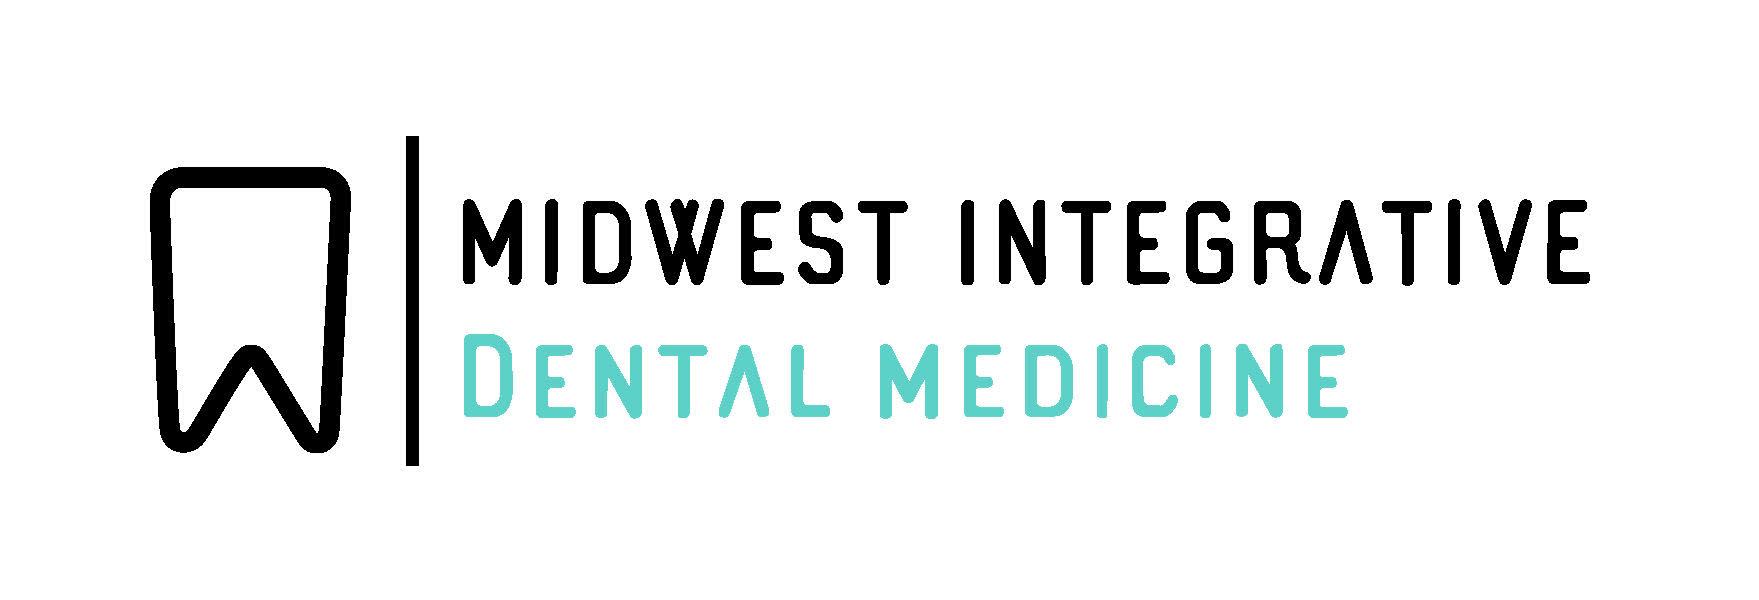 Midwest Integrative Dental Medicine